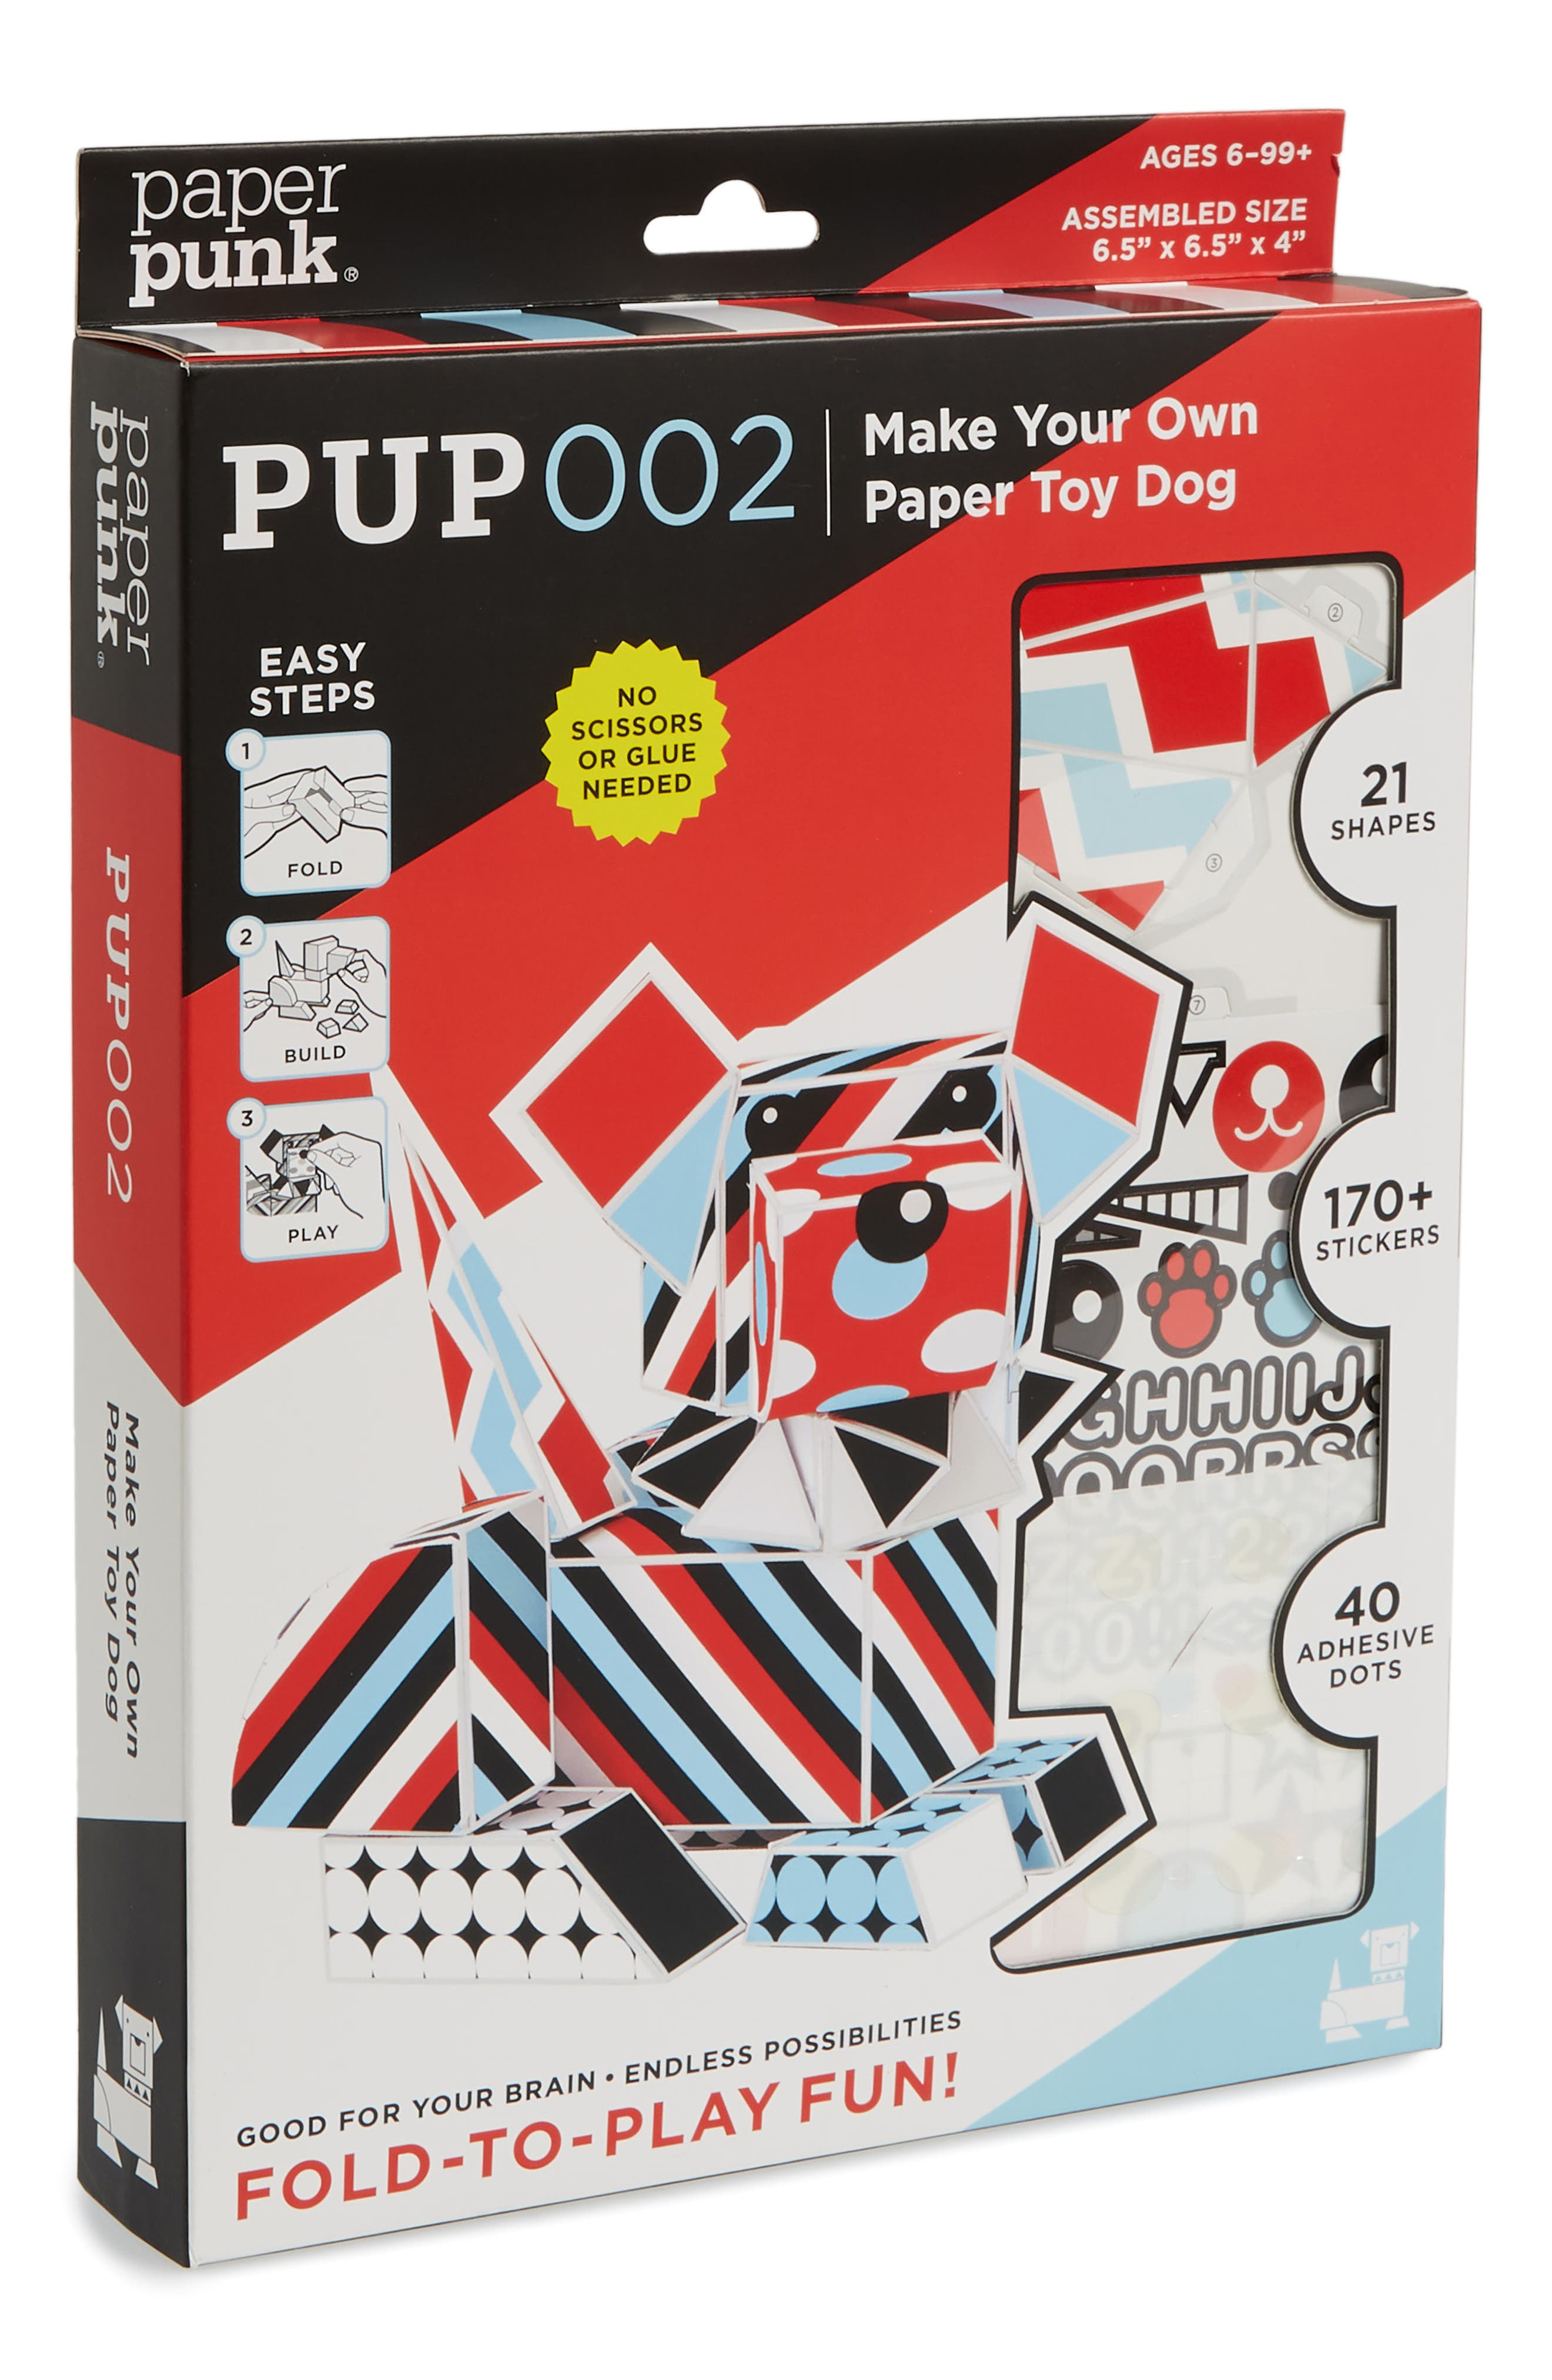 Pup002 Make Your Own Paper Toy Dog Kit,                         Main,                         color, 600